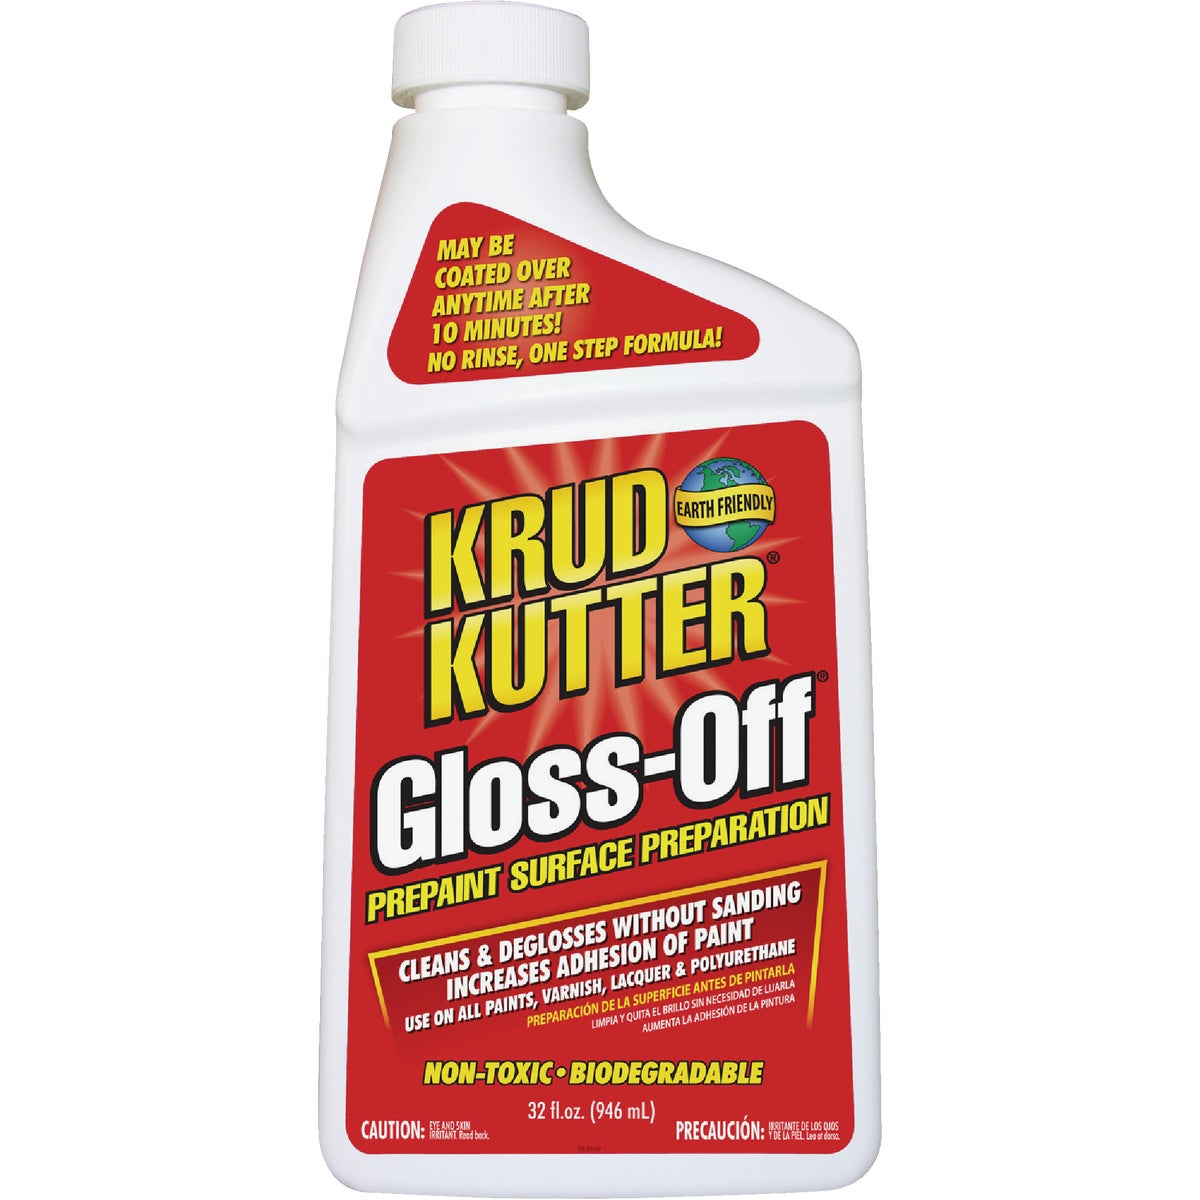 PAINT PREP GLOSS REMOVER